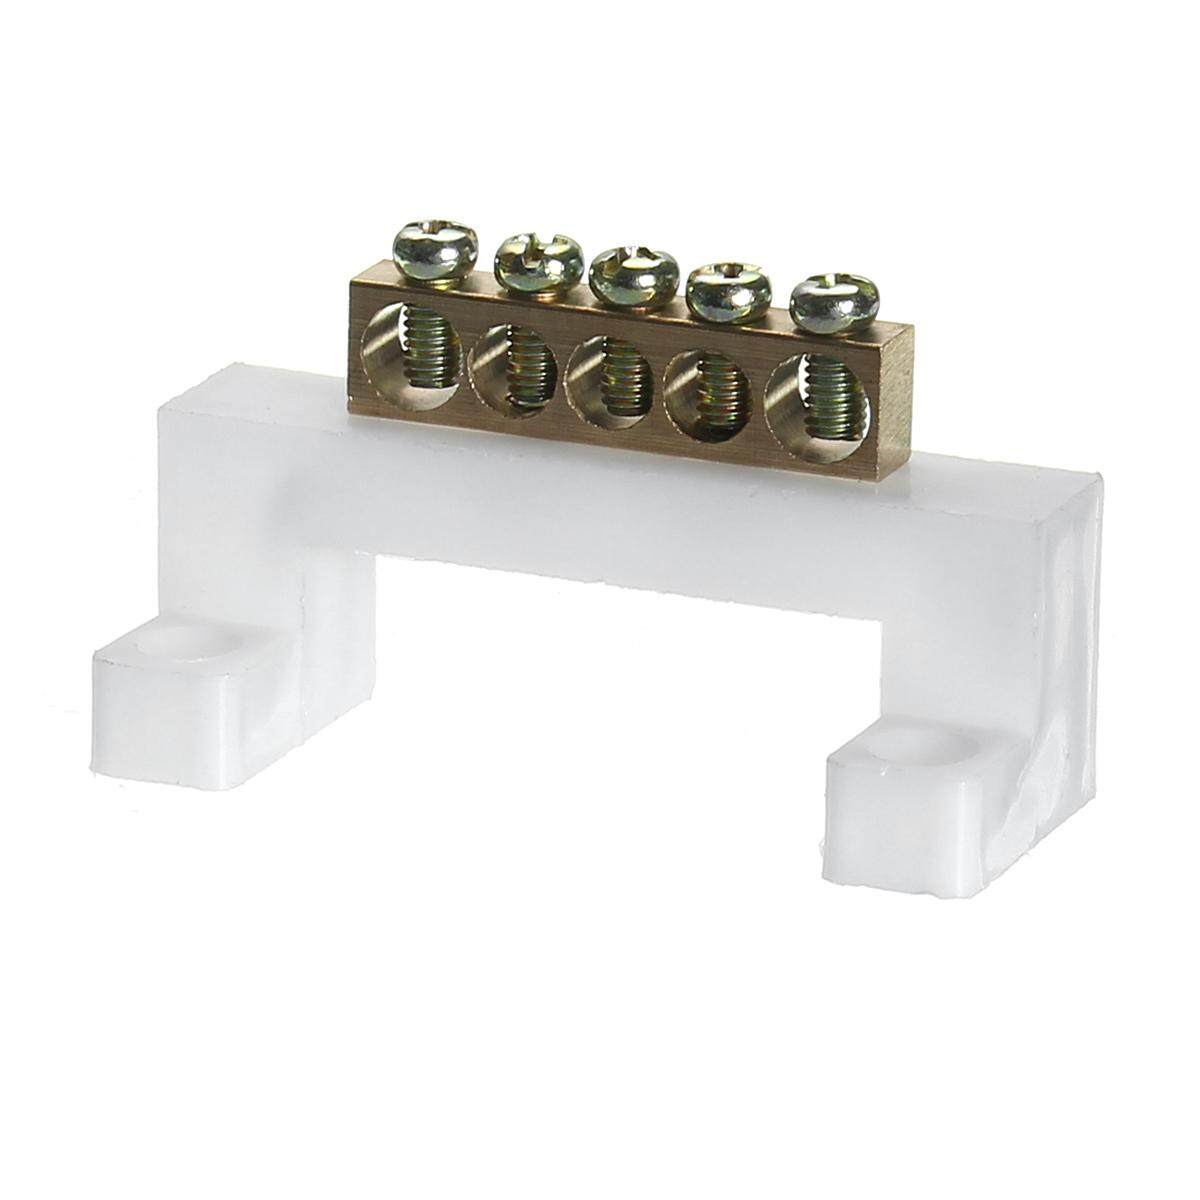 Electric Cable Connector 10 Positions Screw Barrier Terminal Strip Block Bar By Moonbeam.